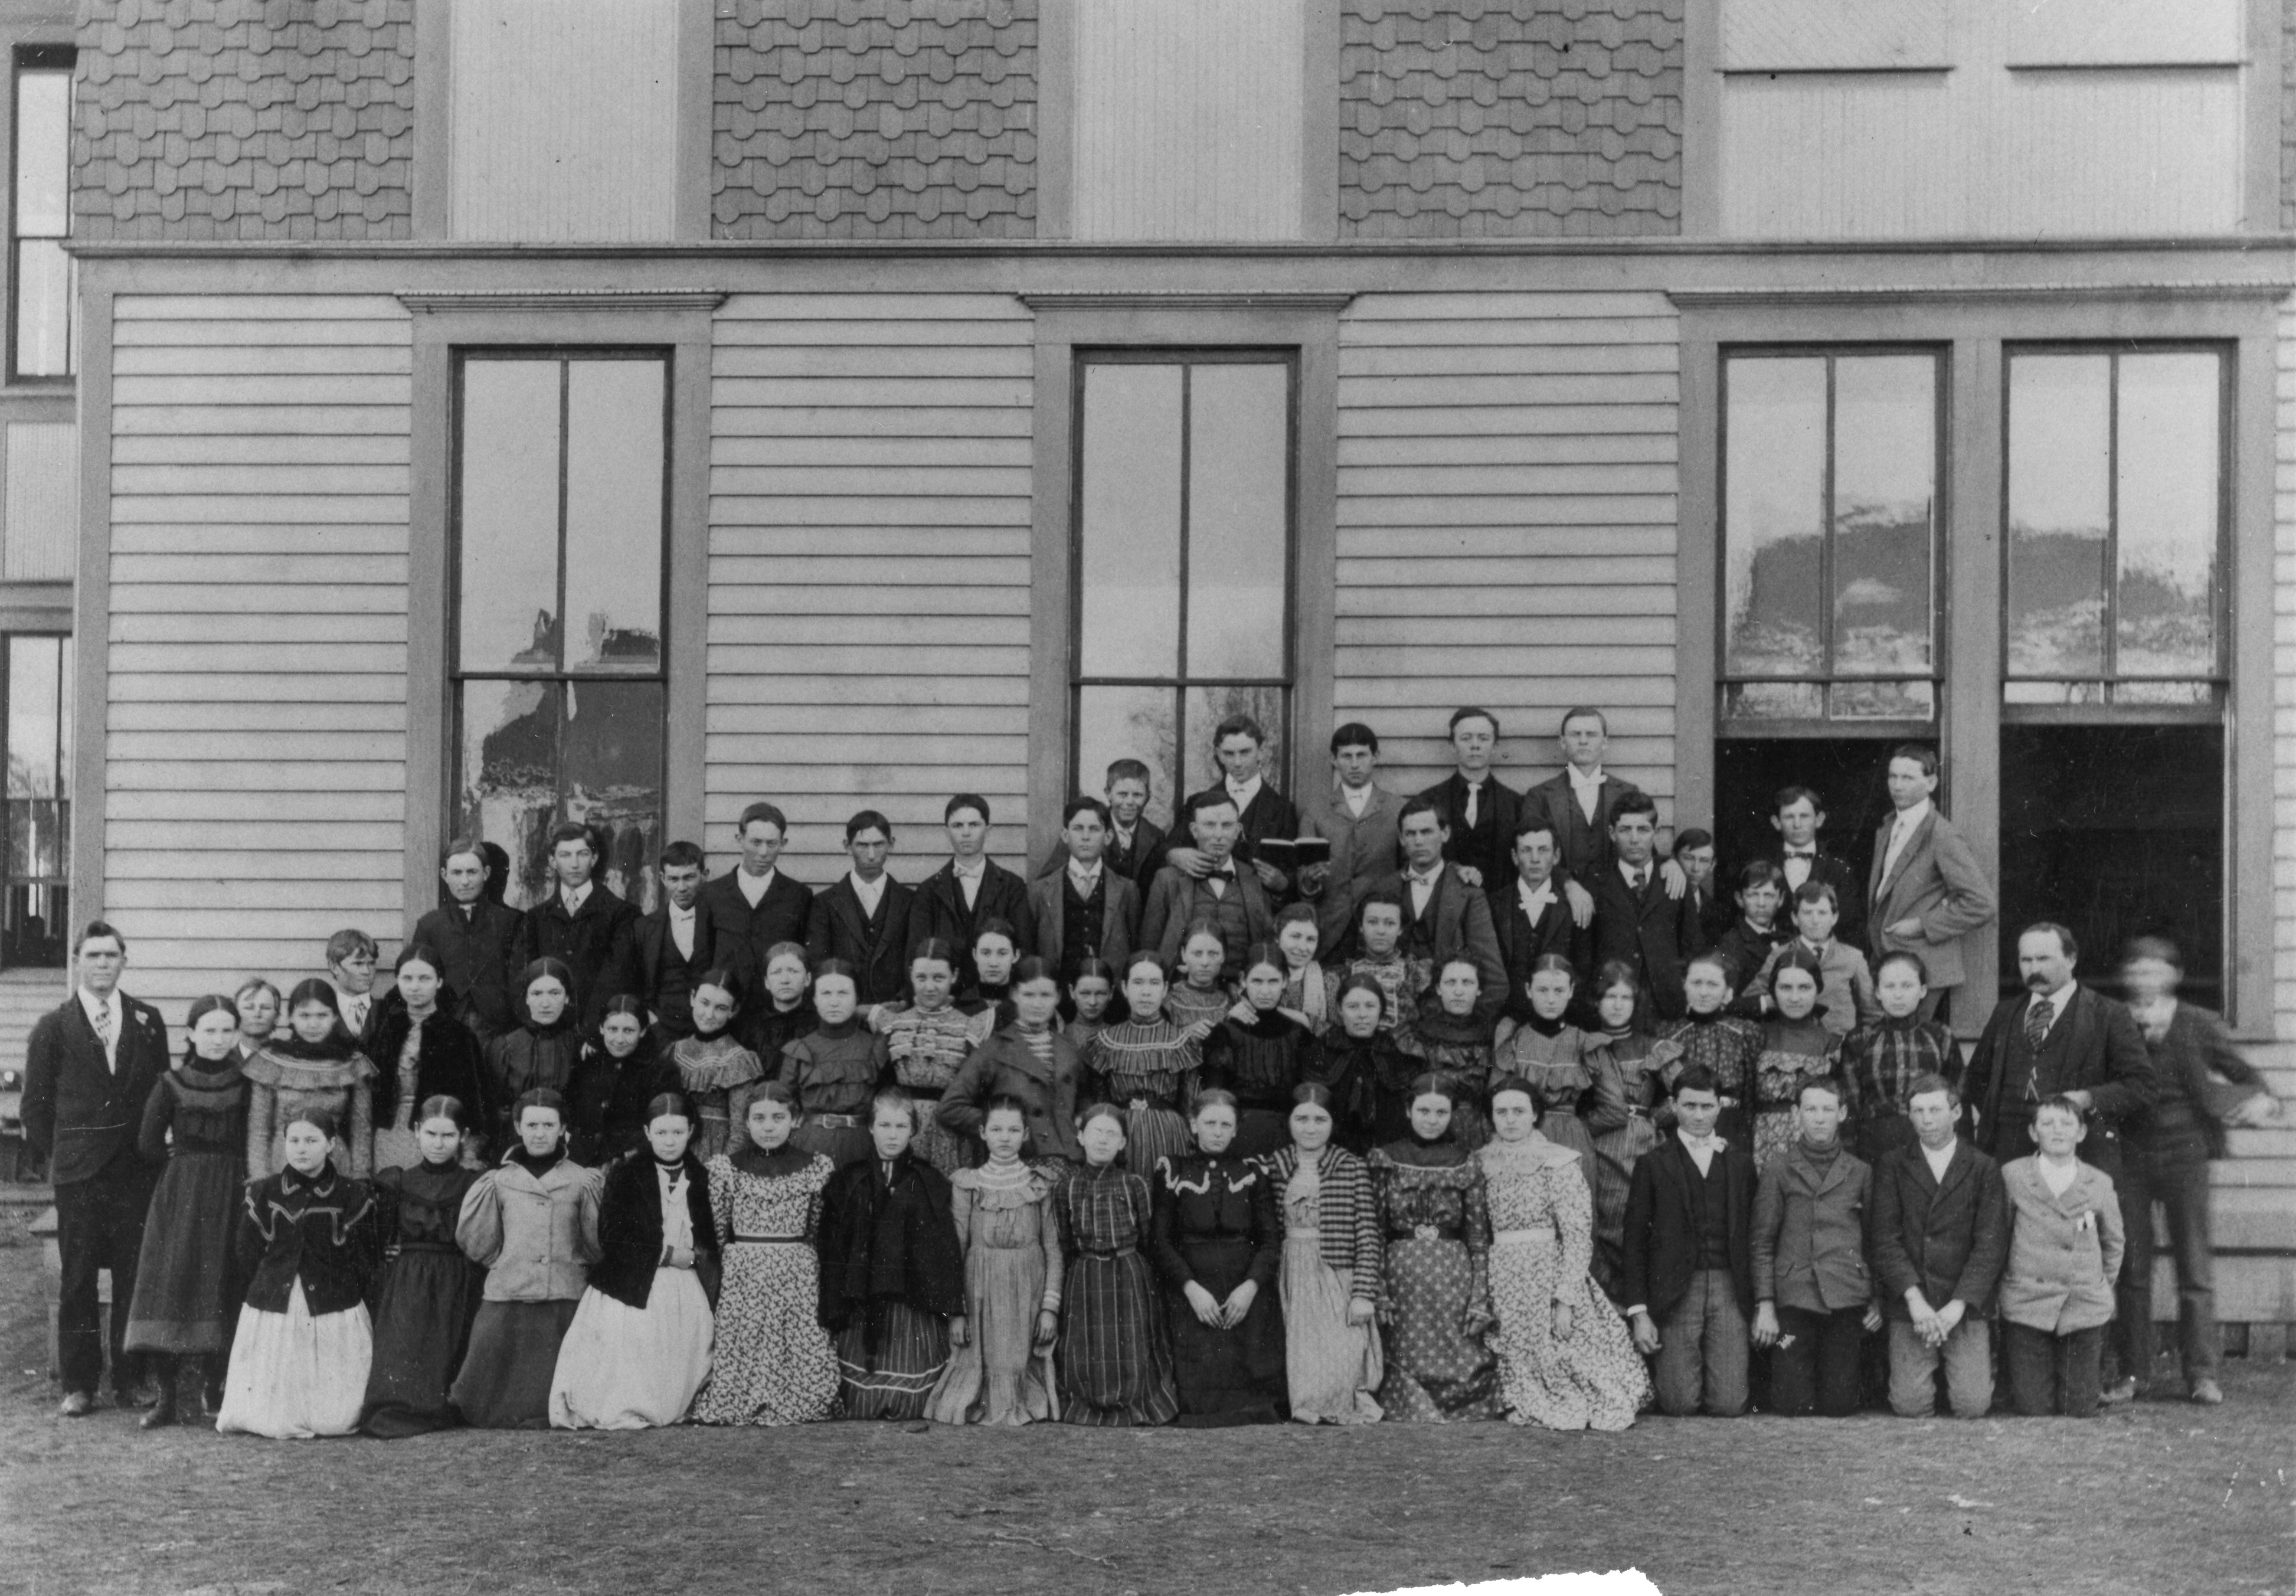 Plano School photo from 1898